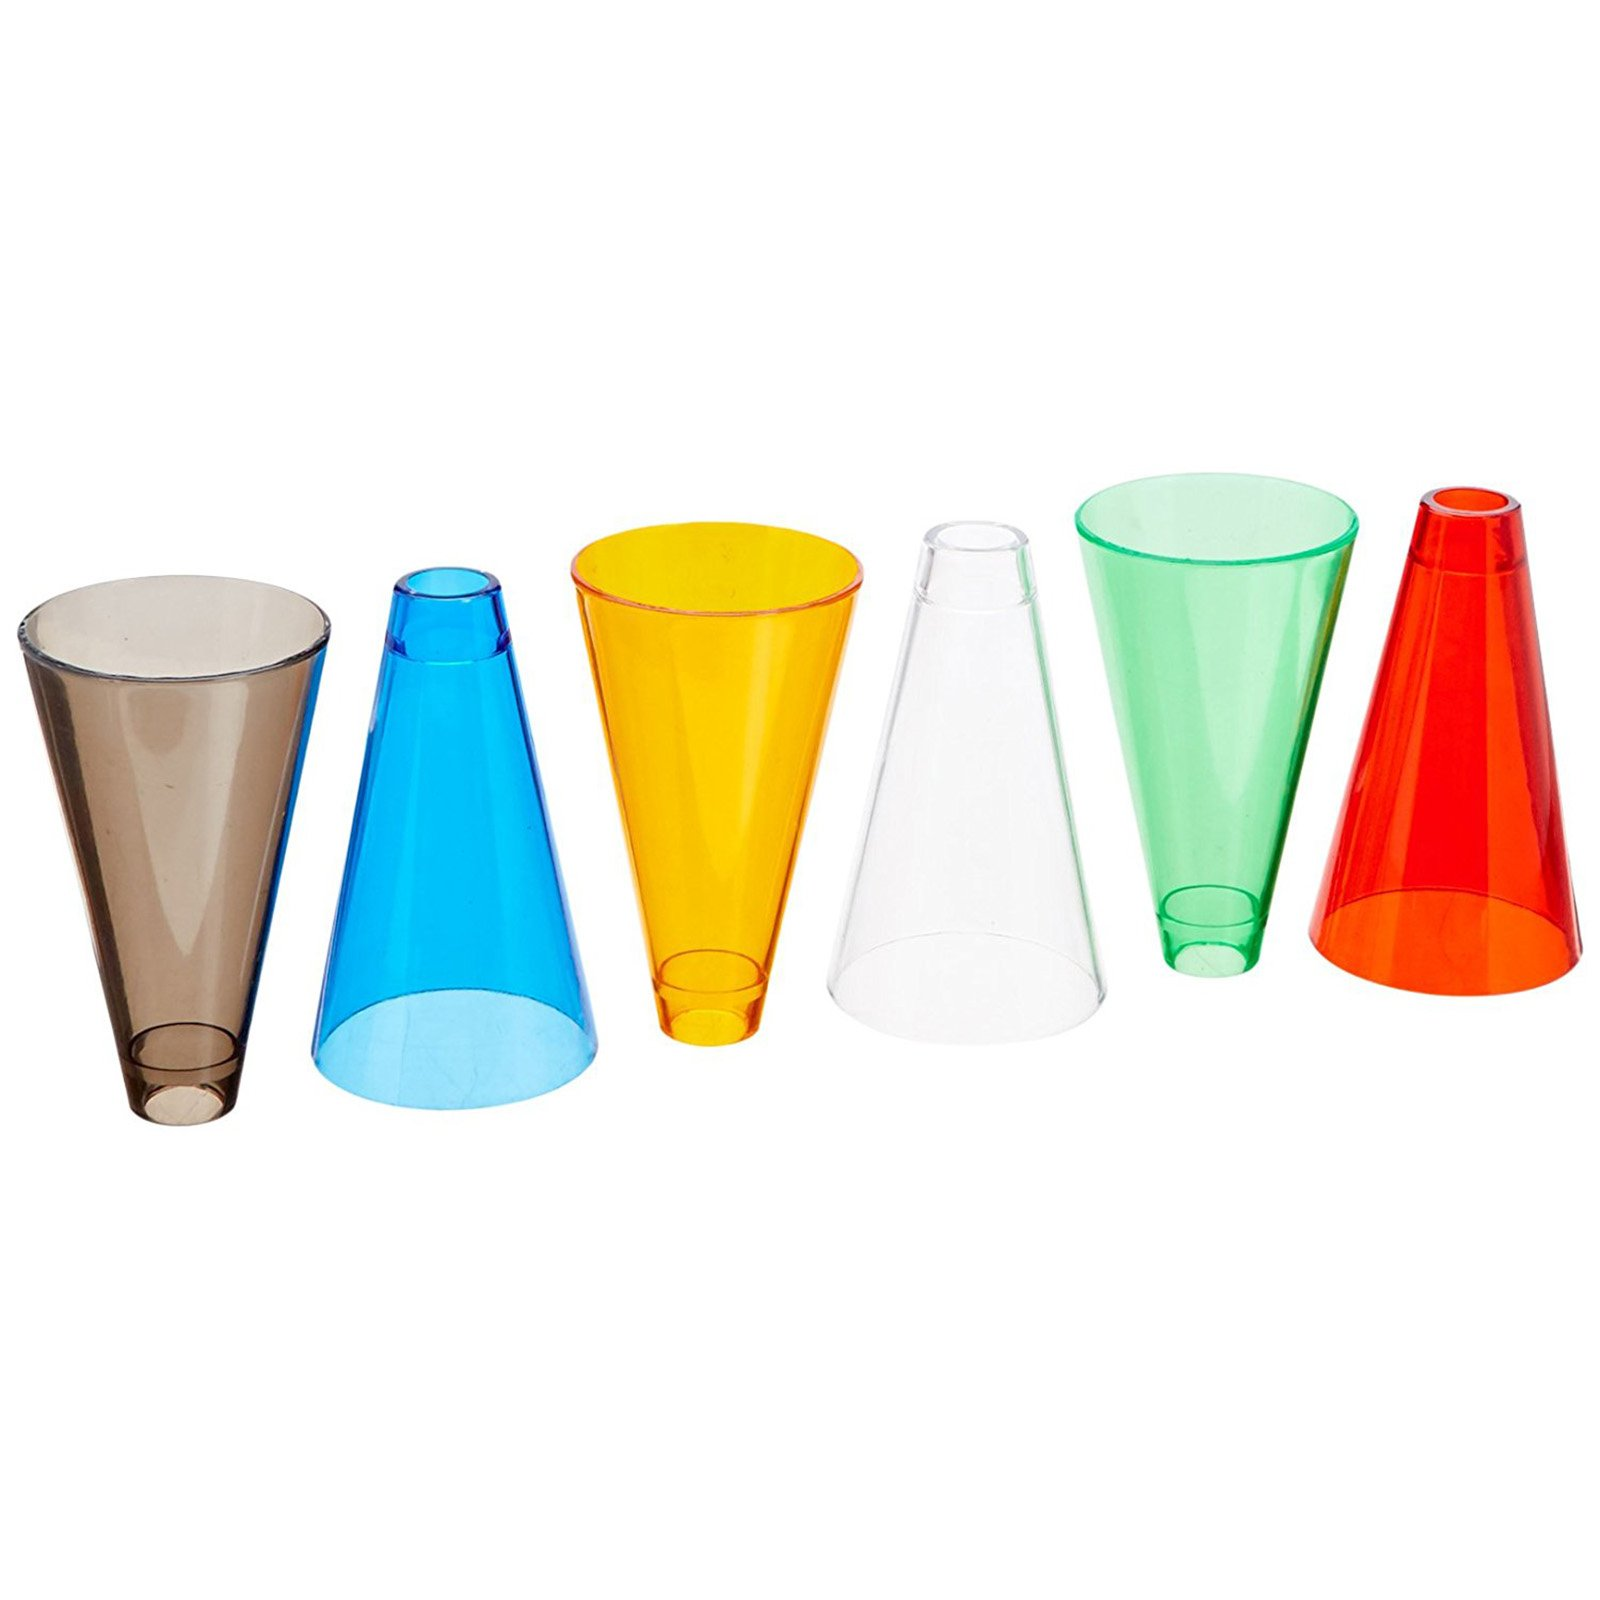 Rolyan Stacking Cones and Plastic Base, Set of 30 Activity Cones with Acrylic Colors and Base for Exercises for Occupational Therapy, Physical Therapy, Perception, and Coordination